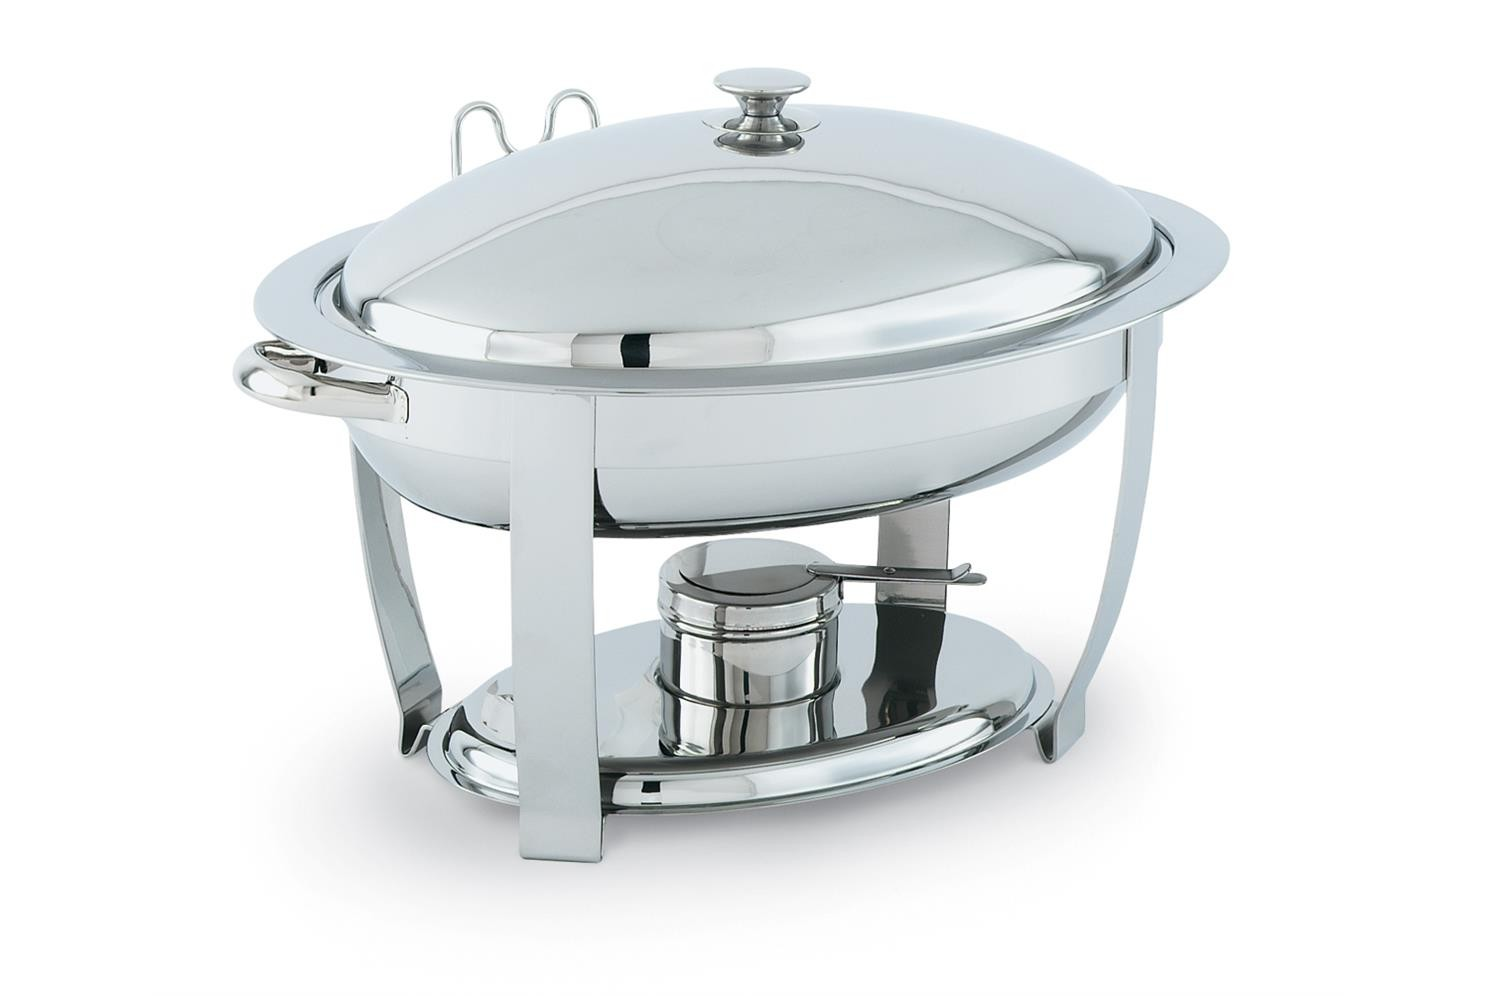 Vollrath 46500 Orion Large Mirror Finish Lift-Off Oval Chafer 6 Qt.